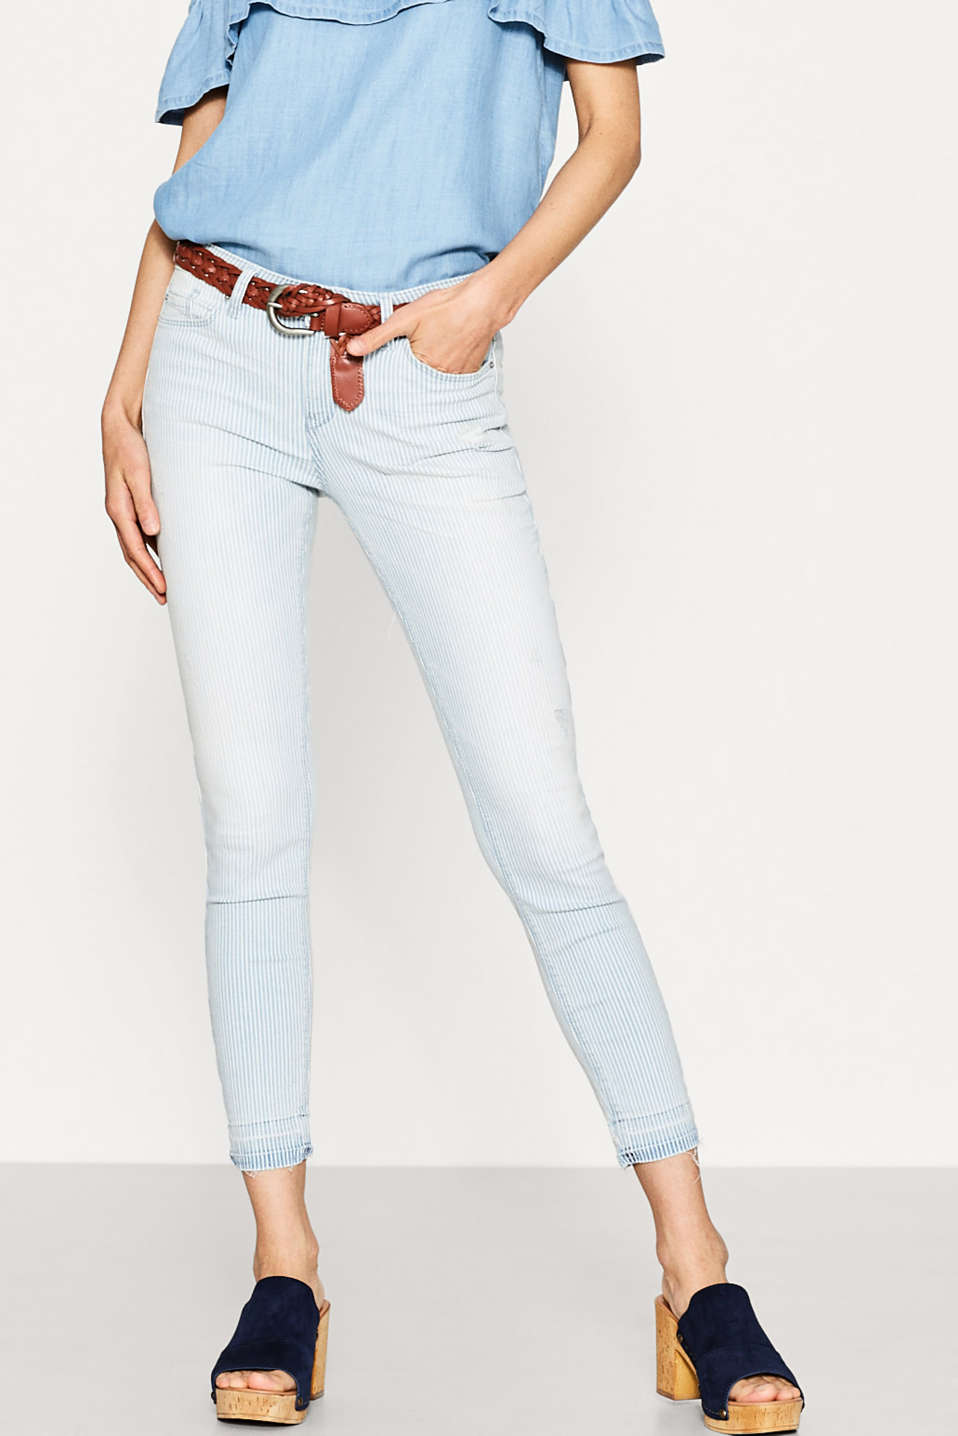 Striped stretch jeans with frayed hems